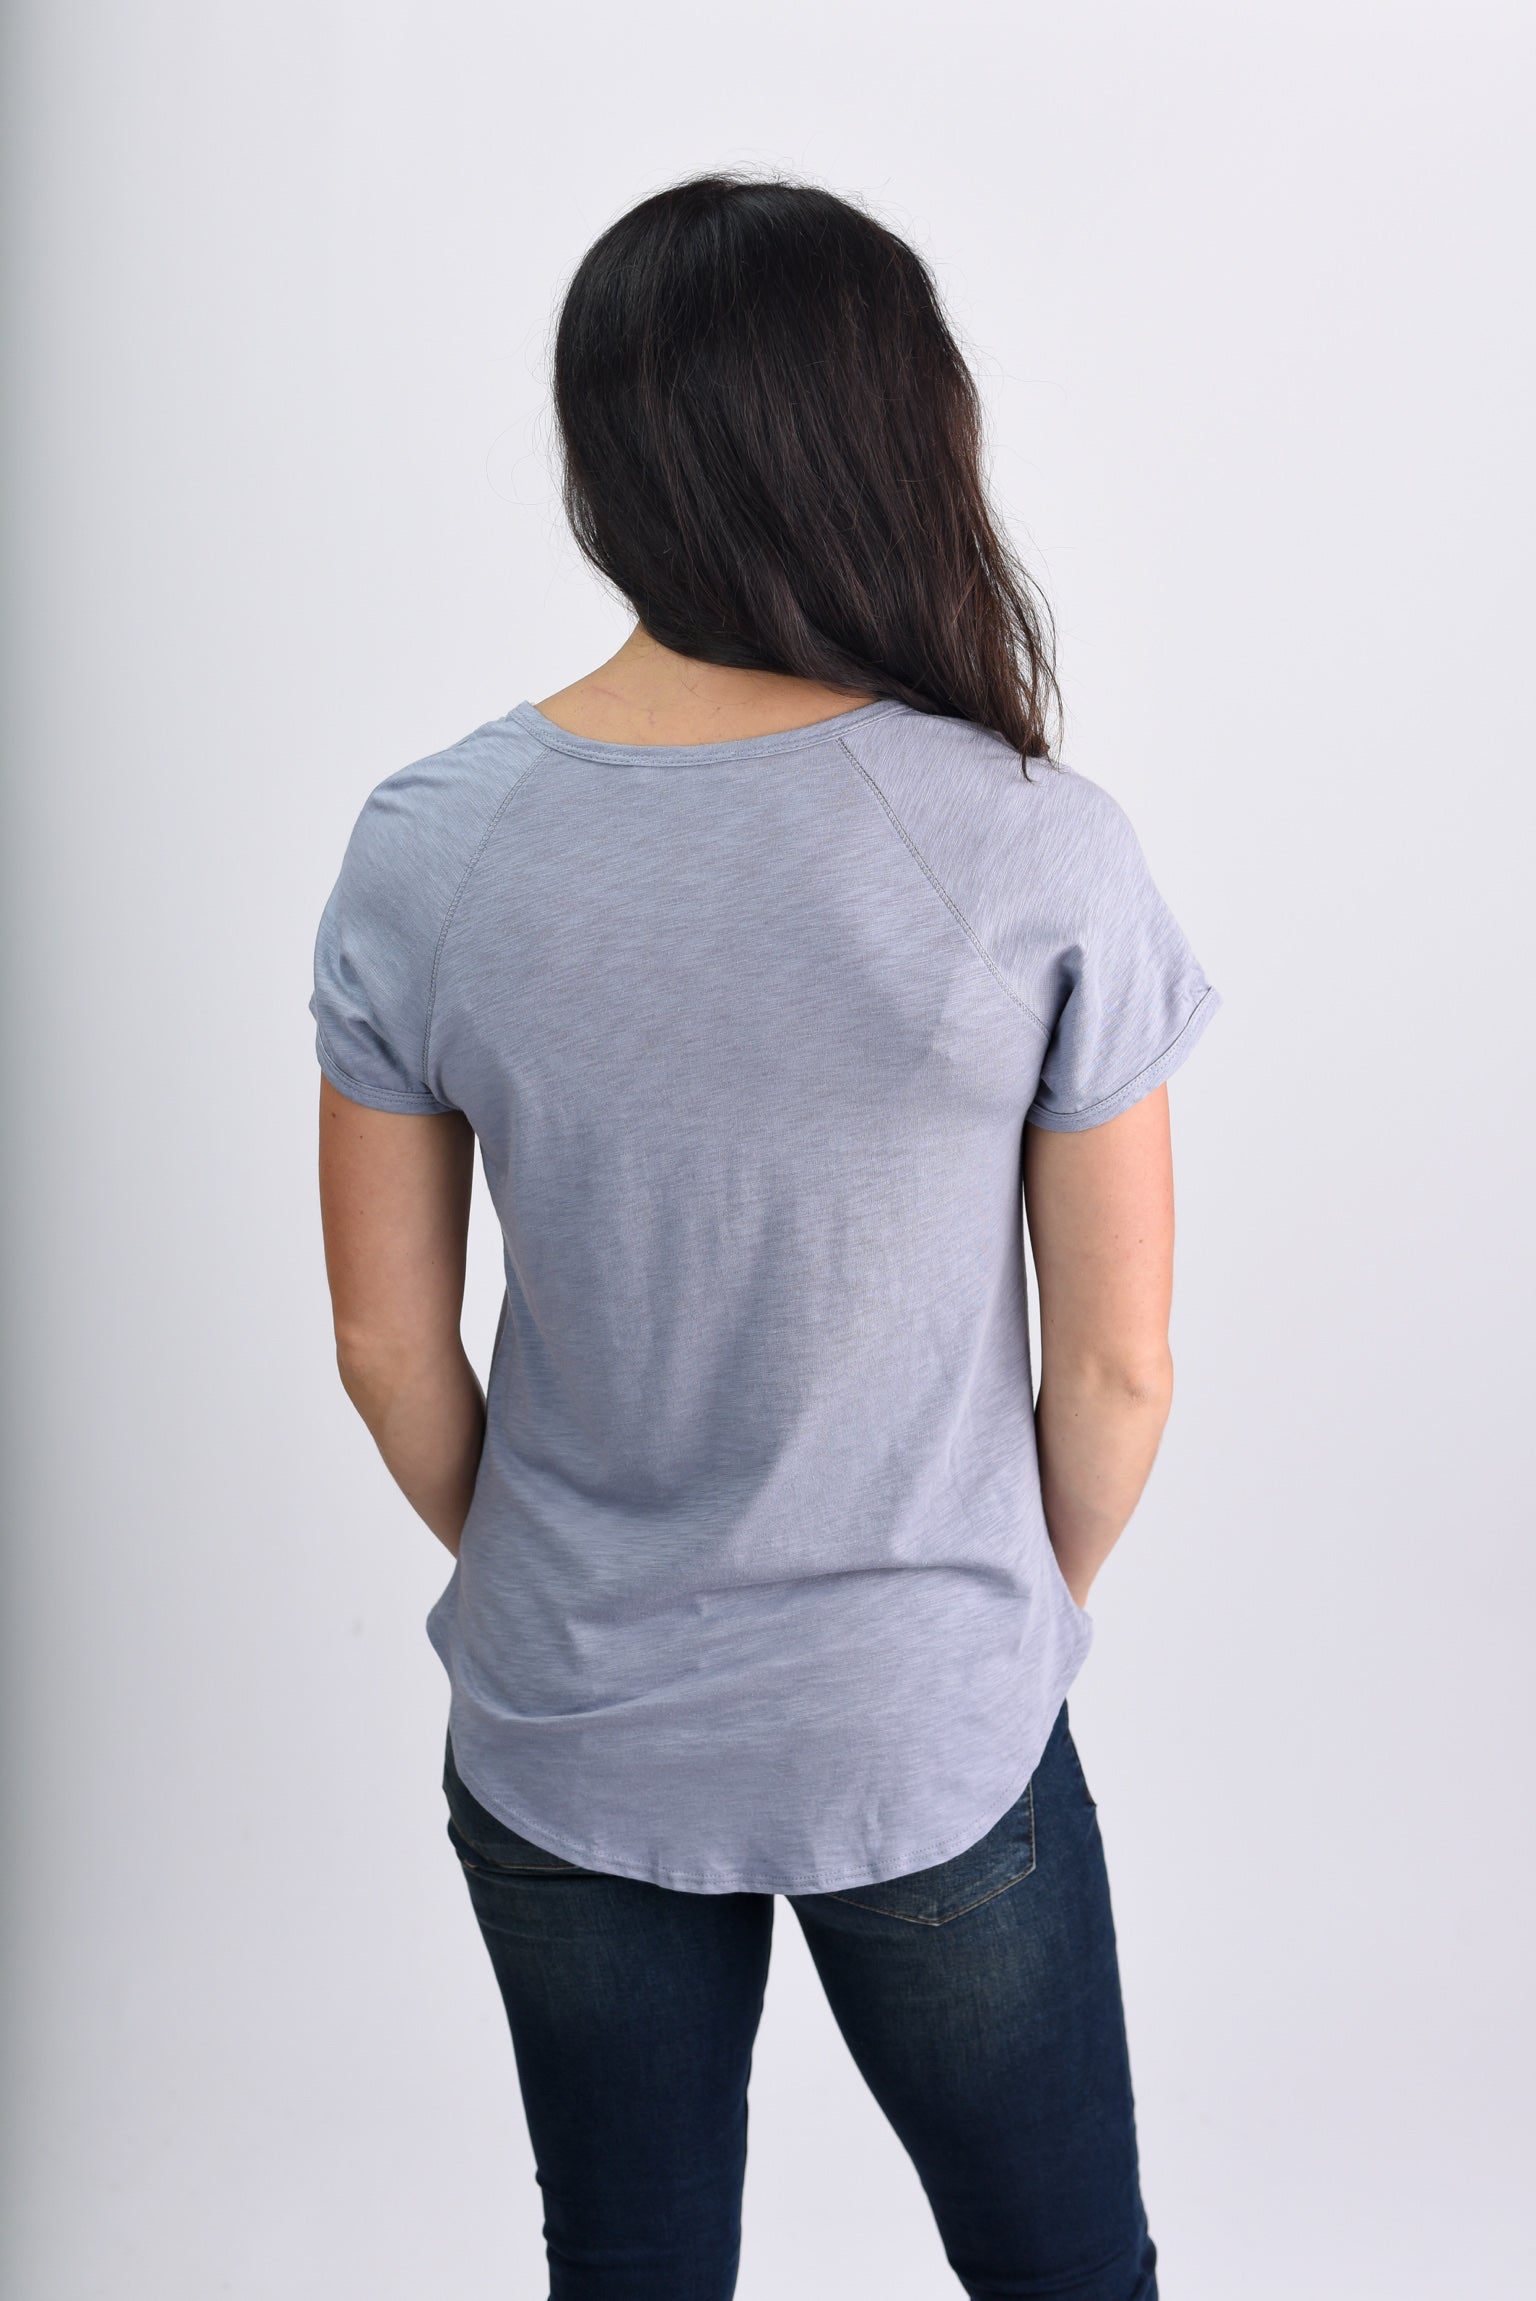 Attention Seeker Basic Scoop Neck Tee-Midnight